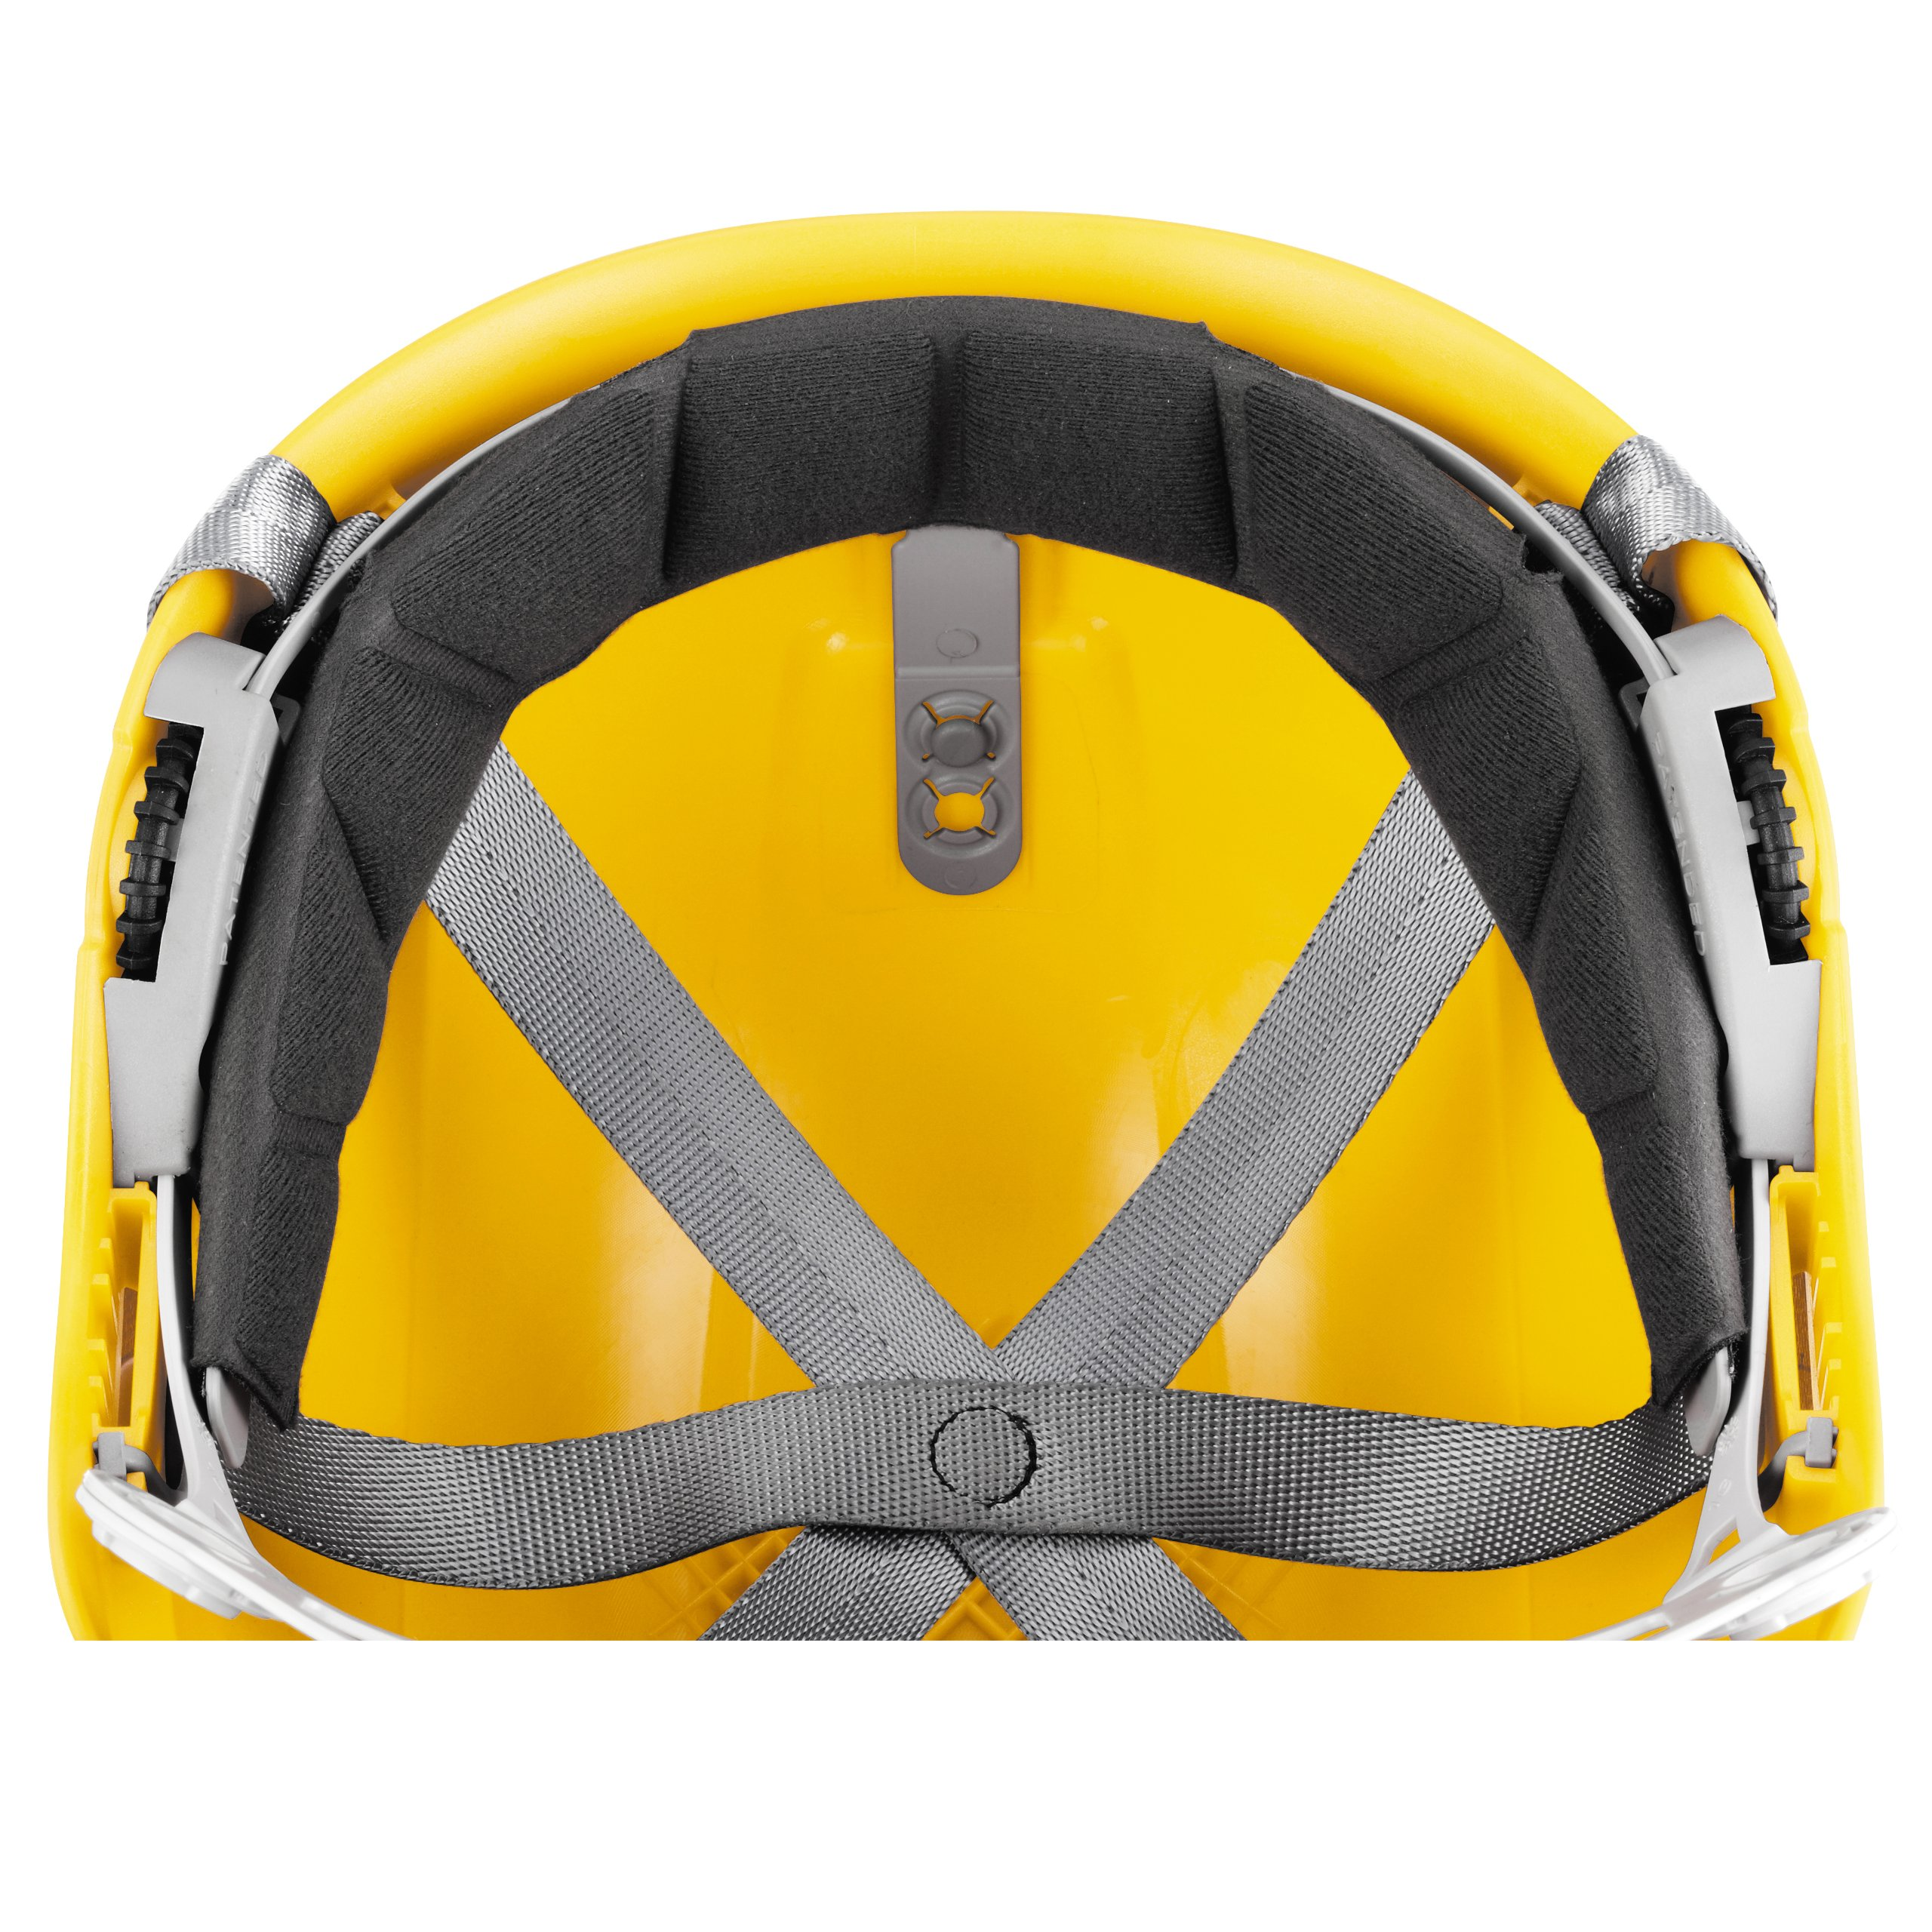 Headband, Absorbent Foam, Vertex Helmet by Petzl (Image #1)